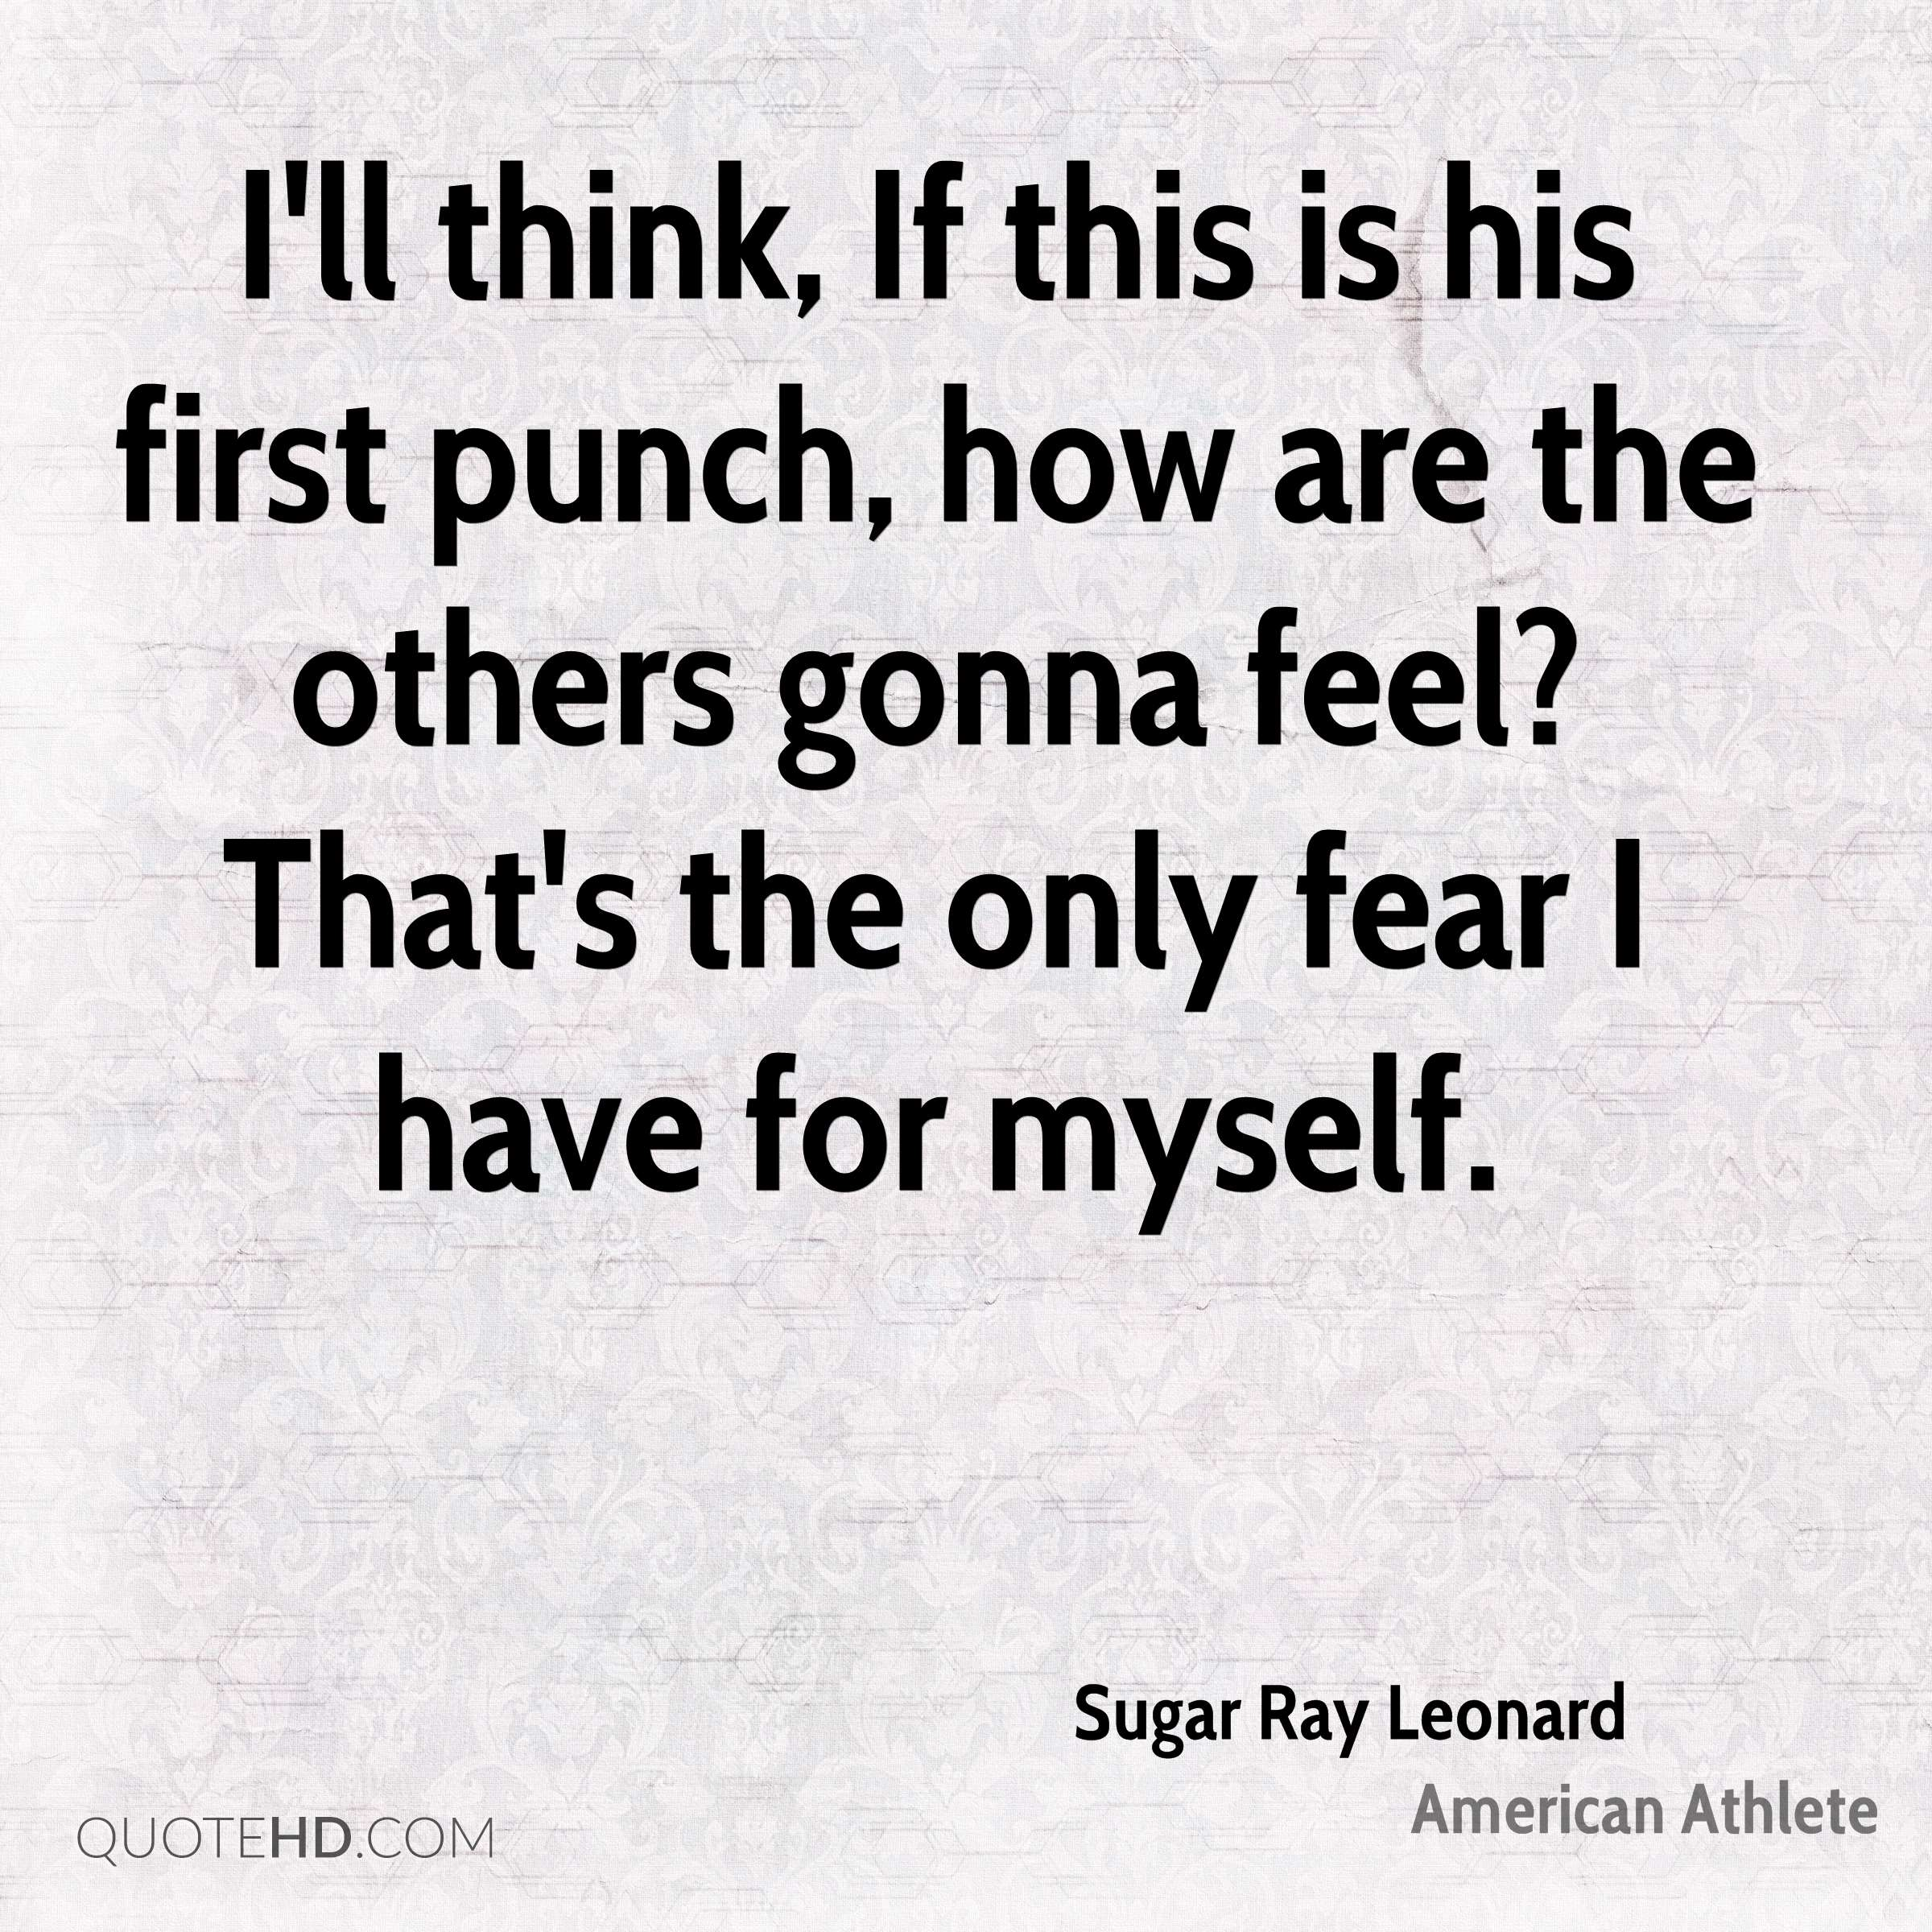 I'll think, If this is his first punch, how are the others gonna feel? That's the only fear I have for myself.